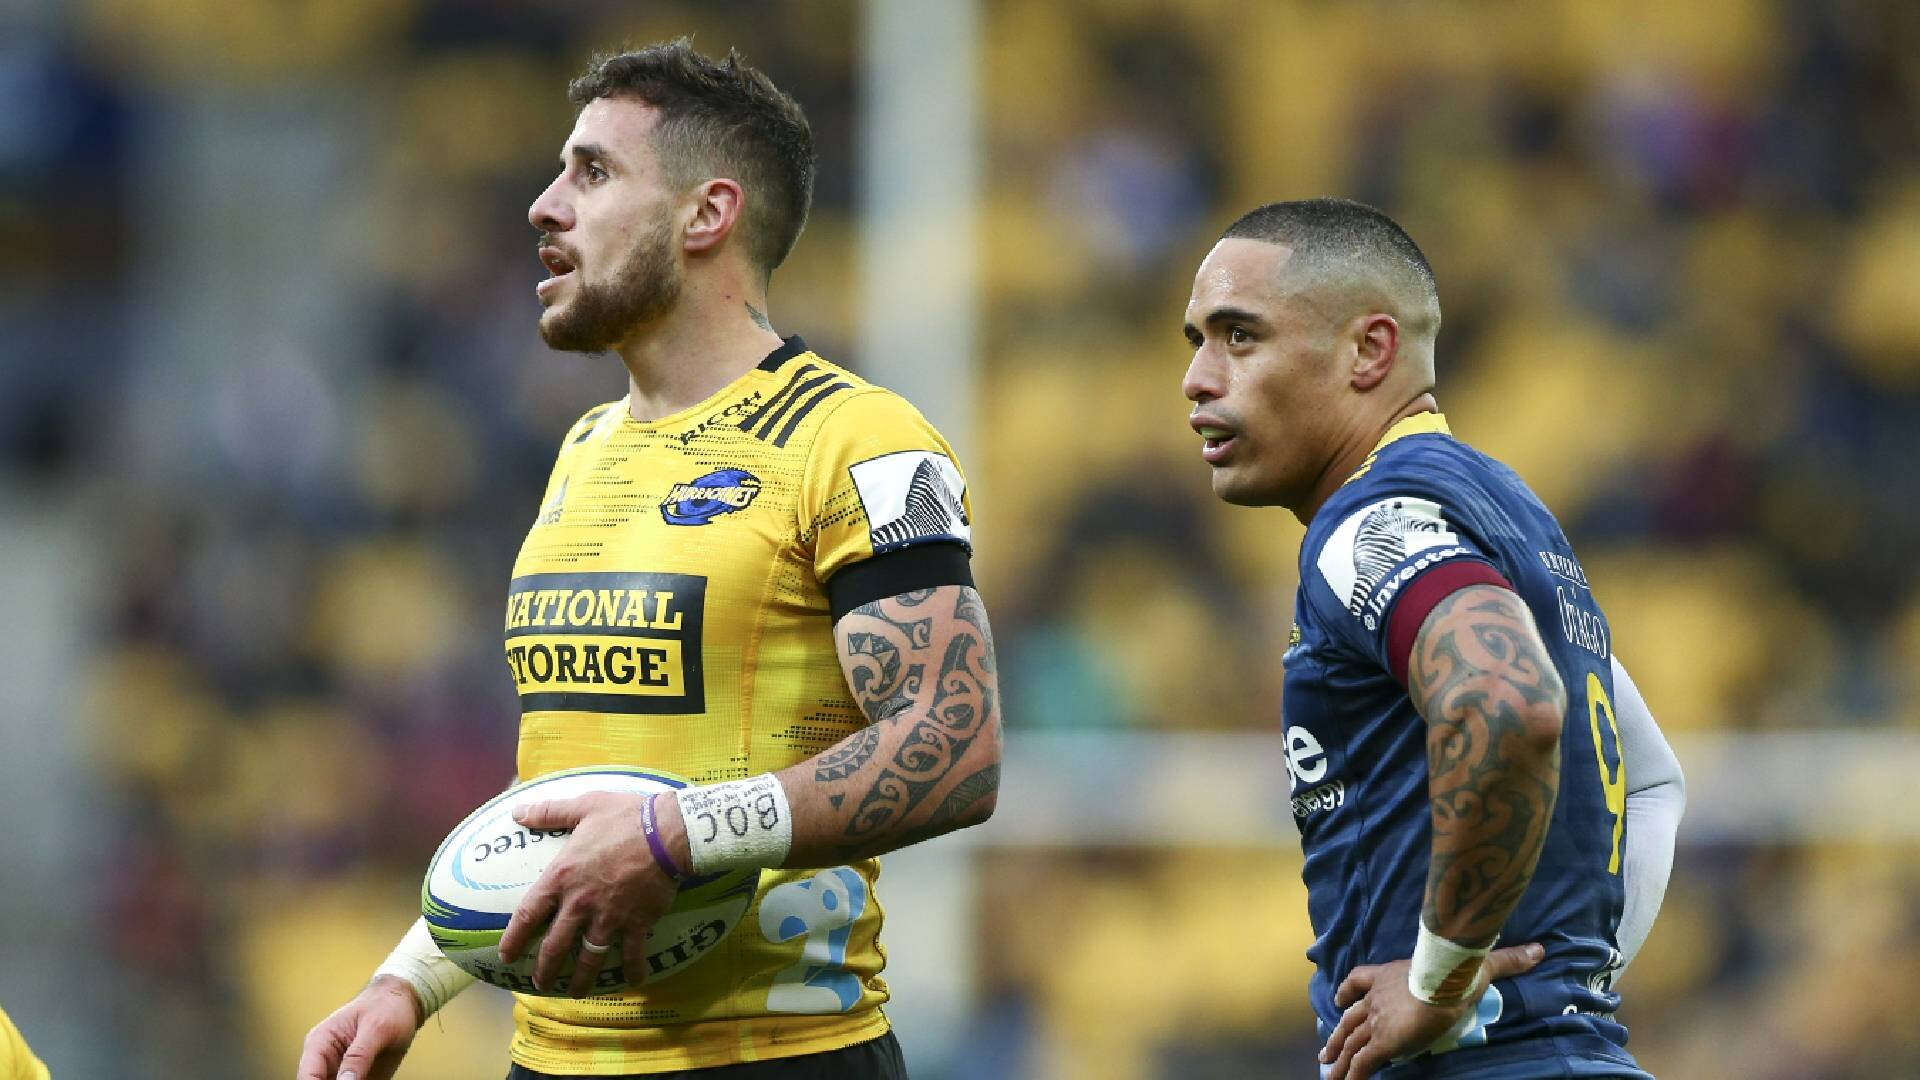 Report: All Blacks halfback set for Japan move in 2021